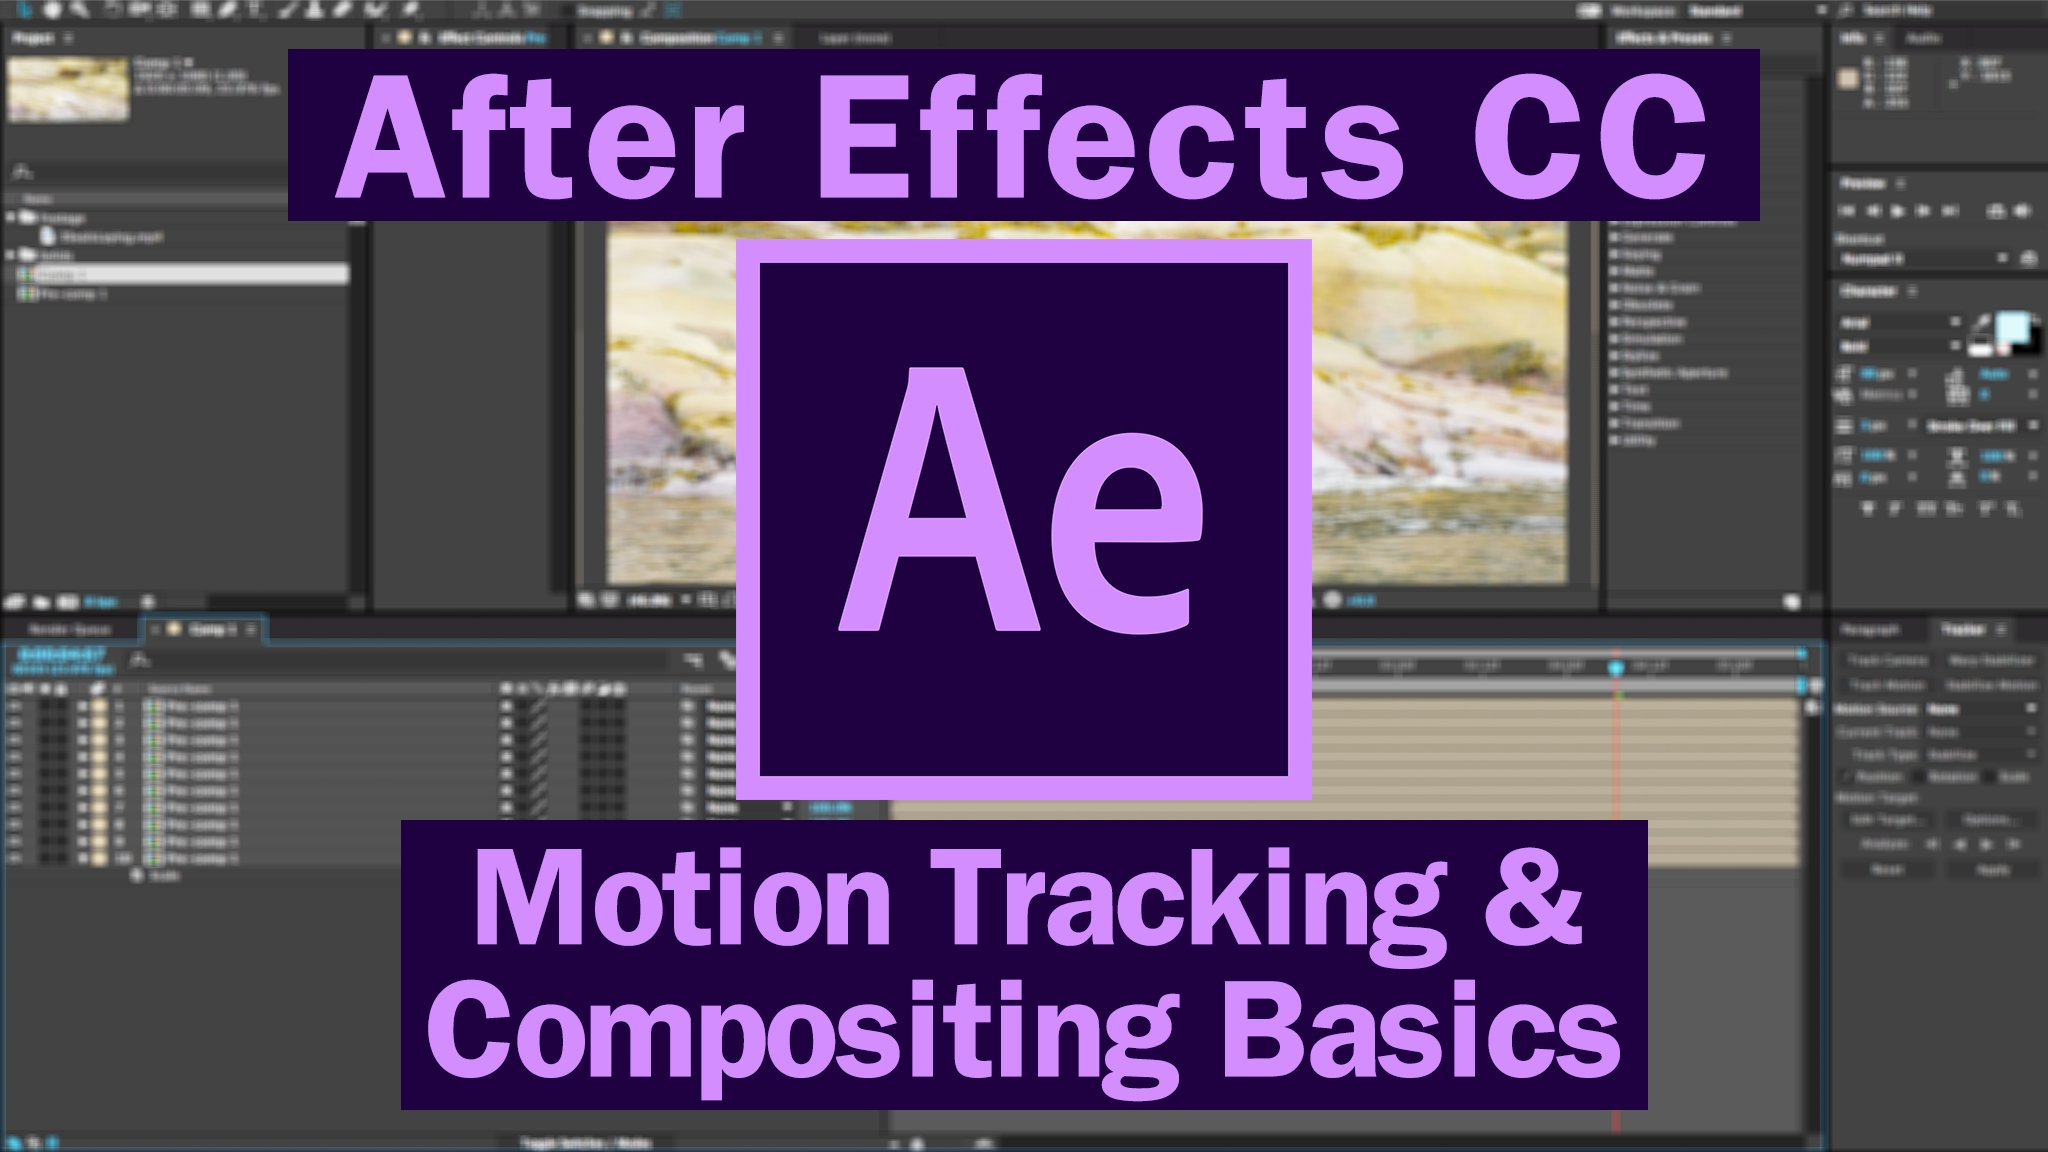 Motion Tracking & Compositing Basics - After Effect Tutorials